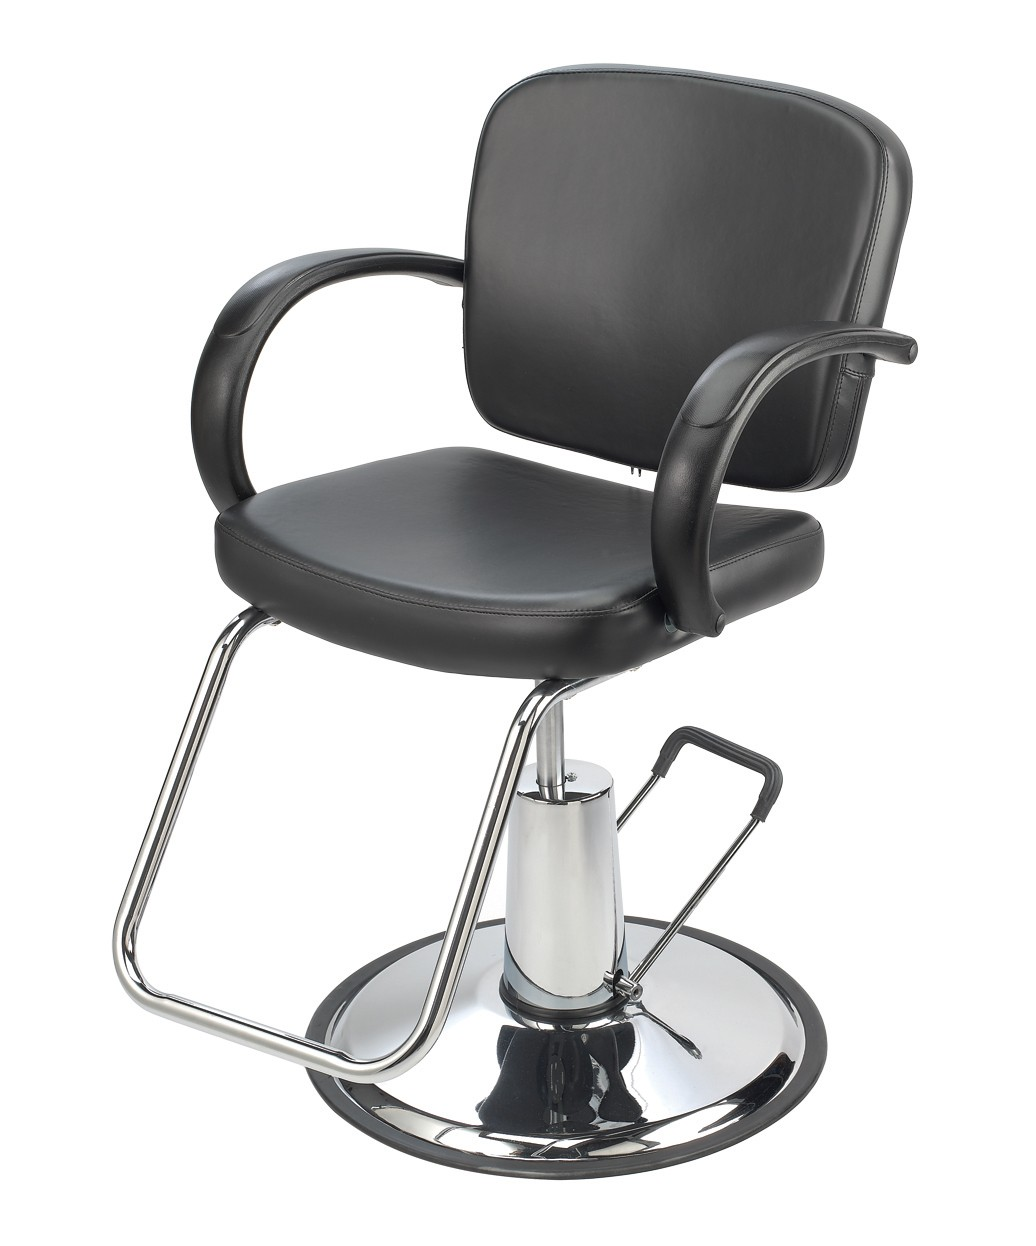 Hydraulic Styling Chair Pibbs 3606 Messina Styling Chair